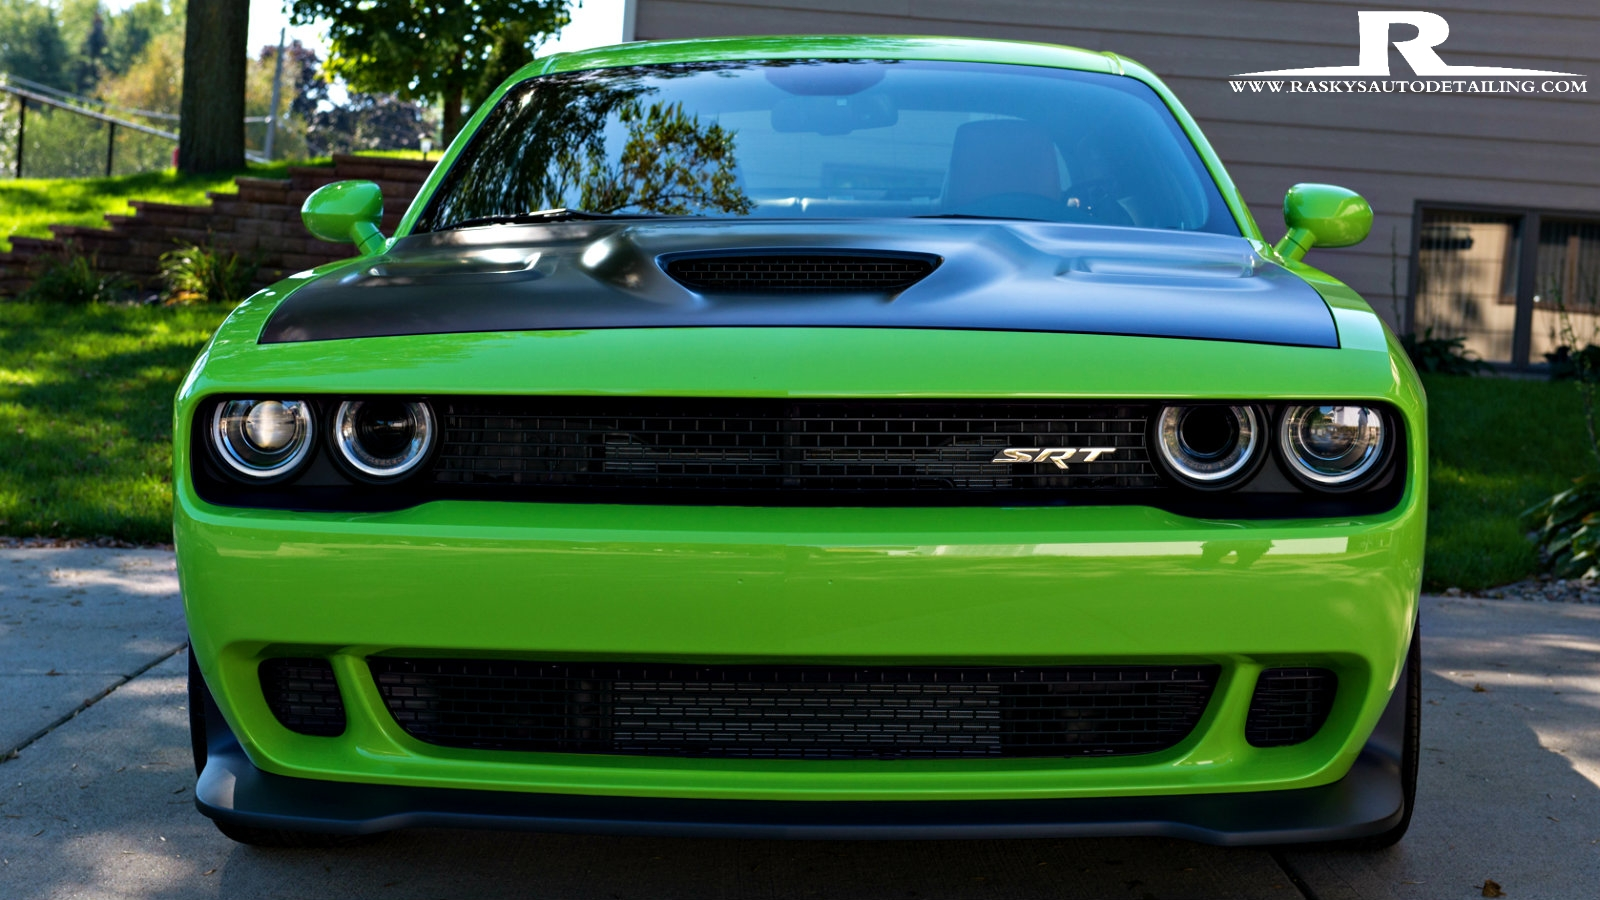 This Dodge SRT glows like the incredible Hulk after a ceramic nano coating by Raskys Auto Detailing of Minneapolis MN